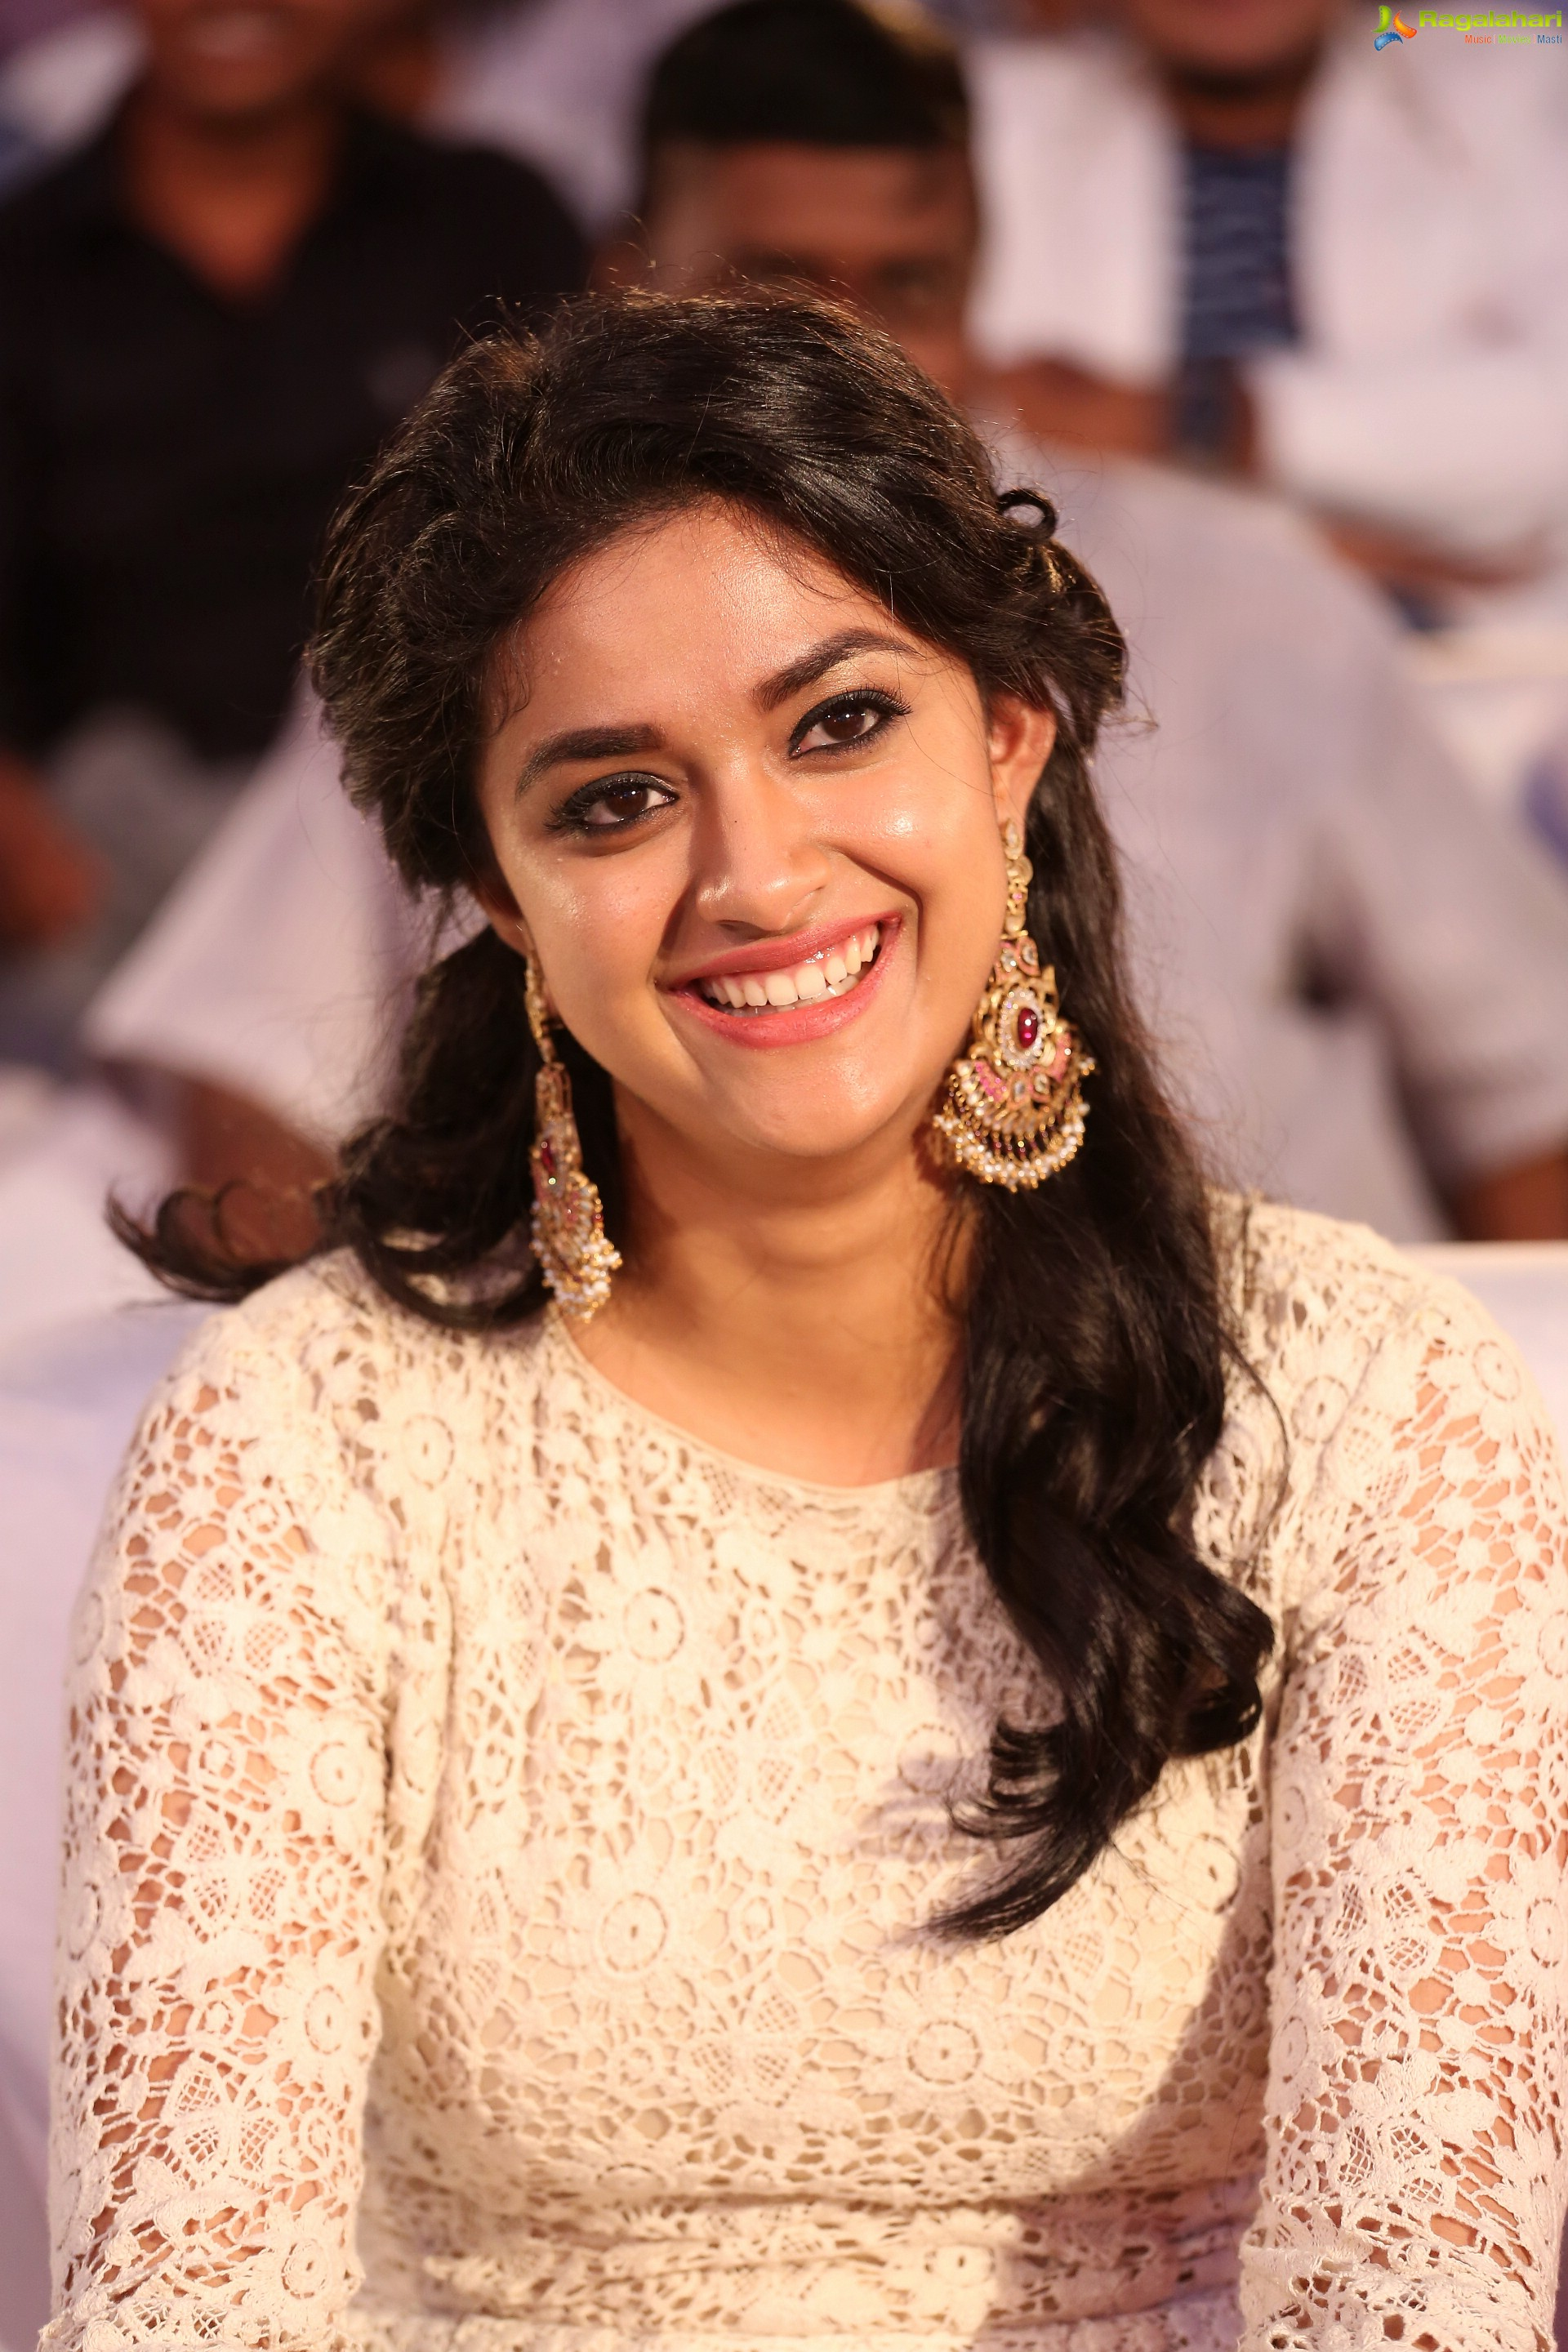 keerthy suresh hd image 5 tollywood actress images images